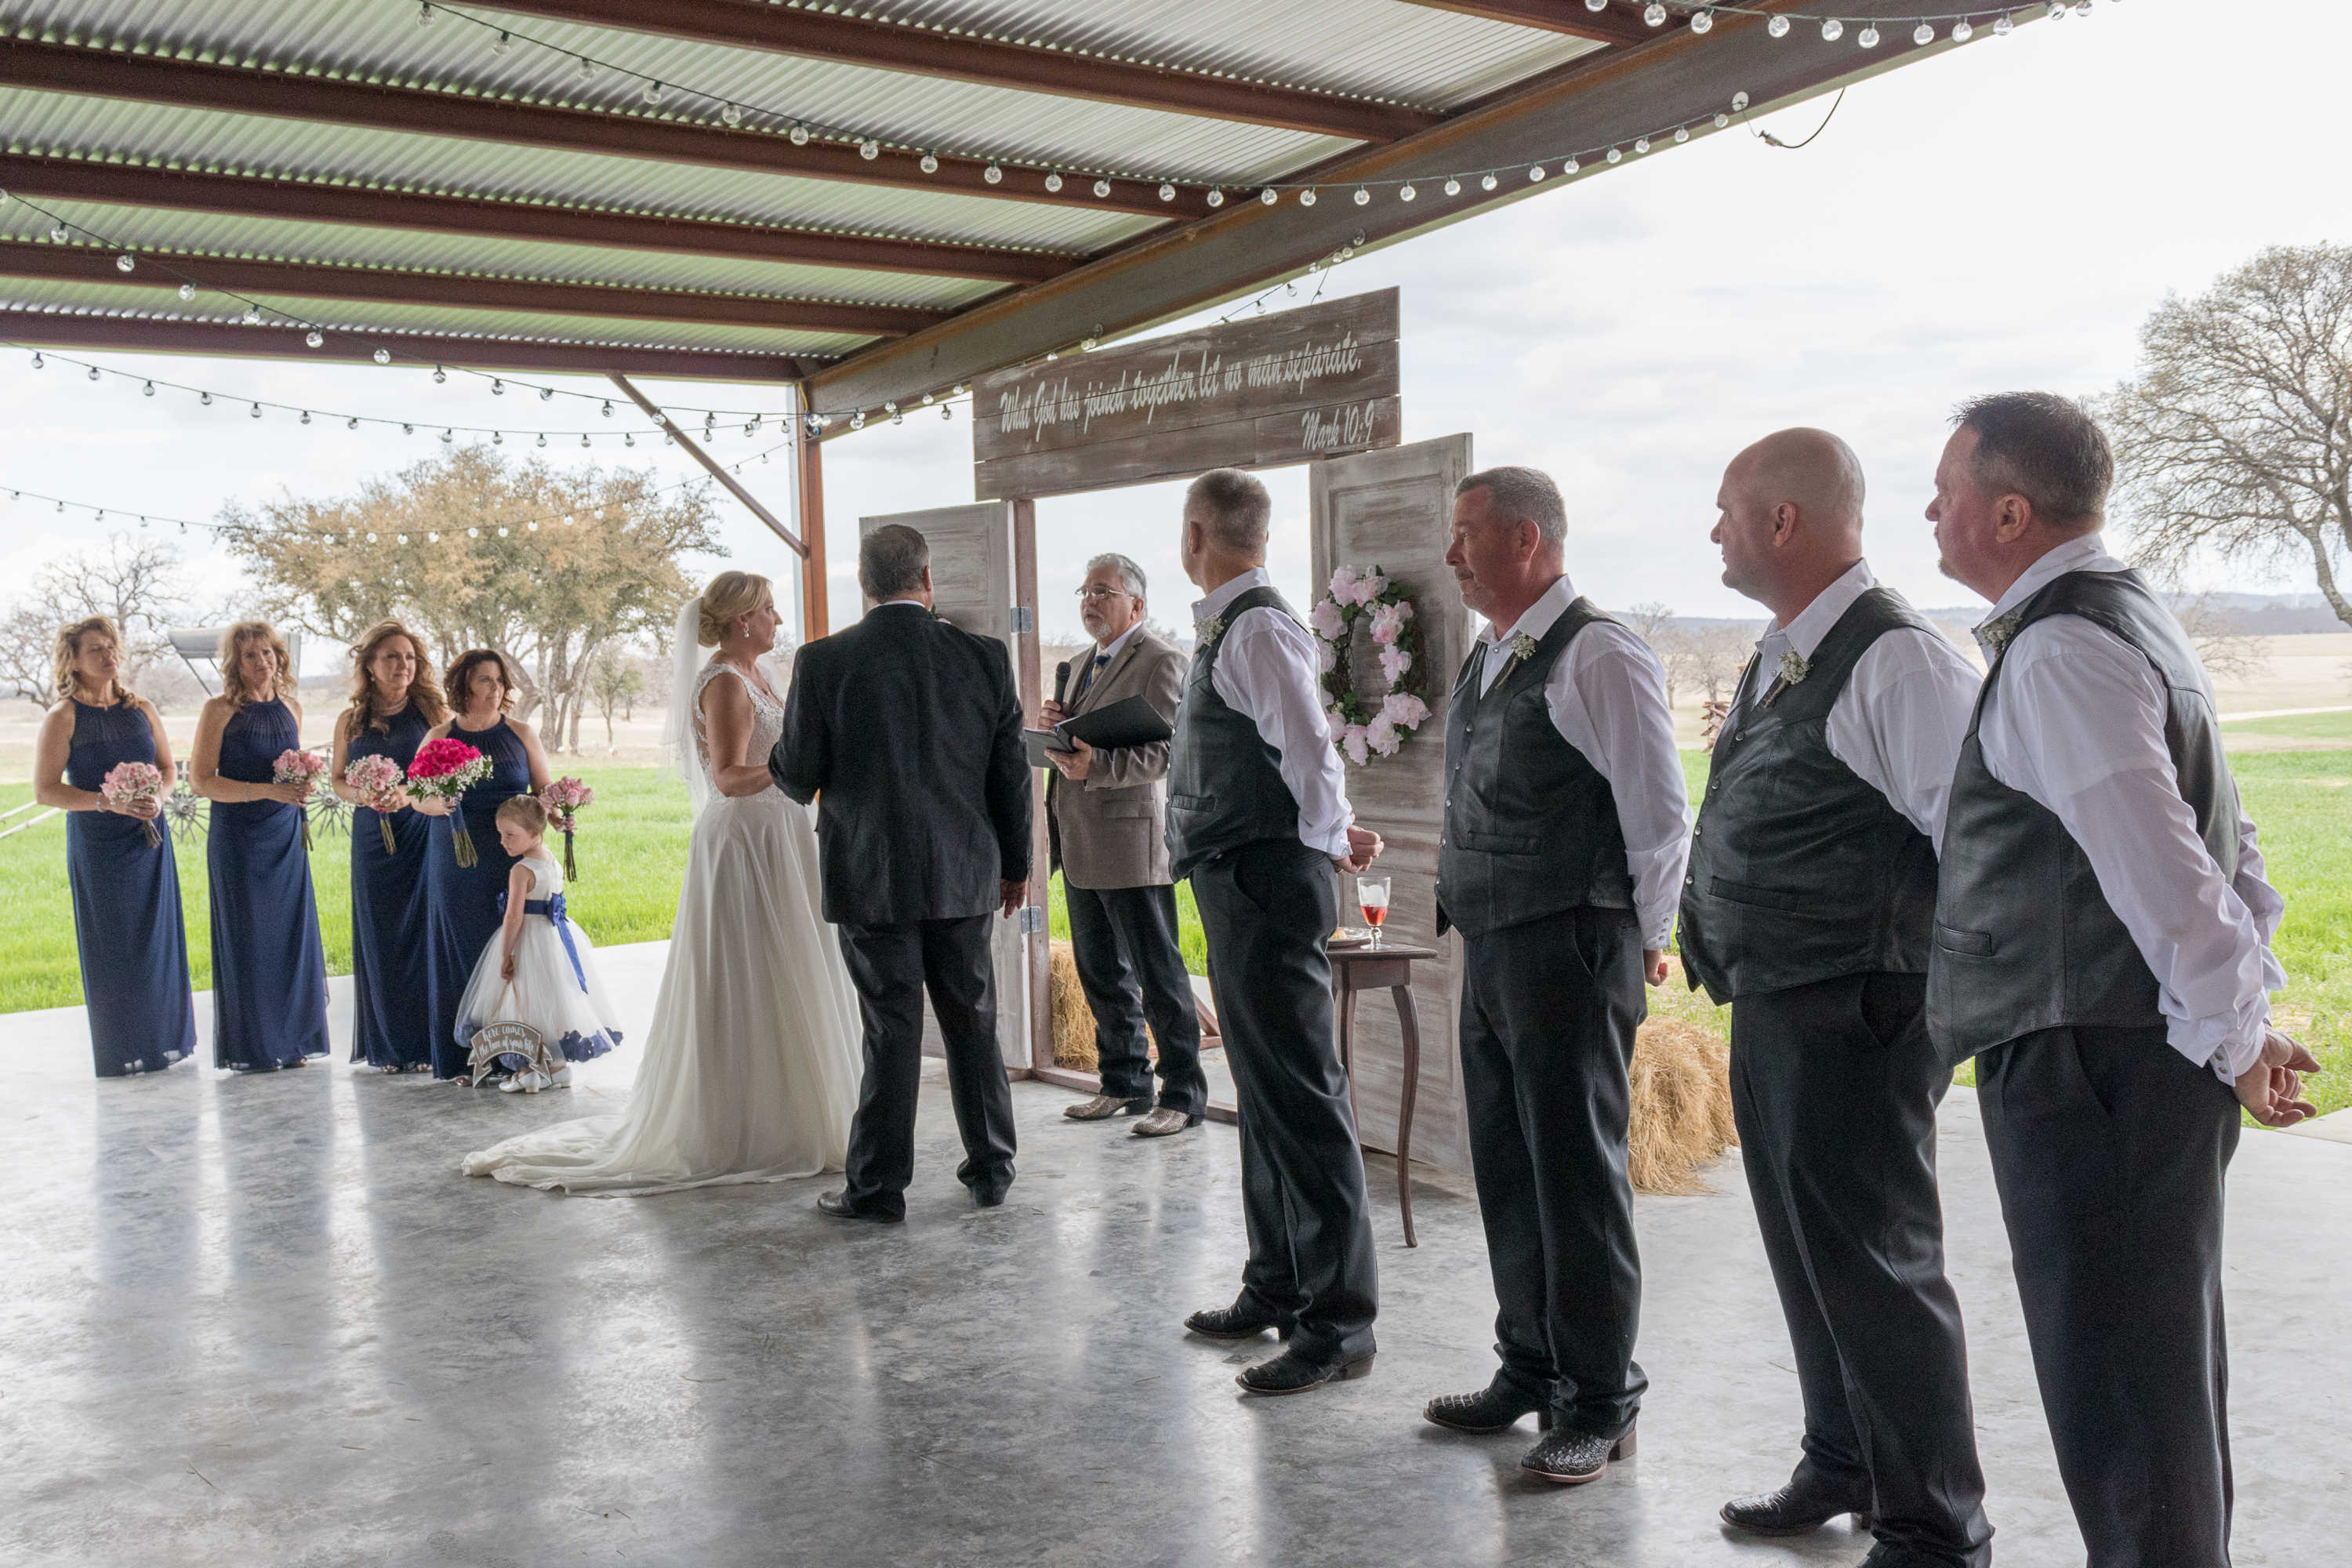 Patio ceremony with a view